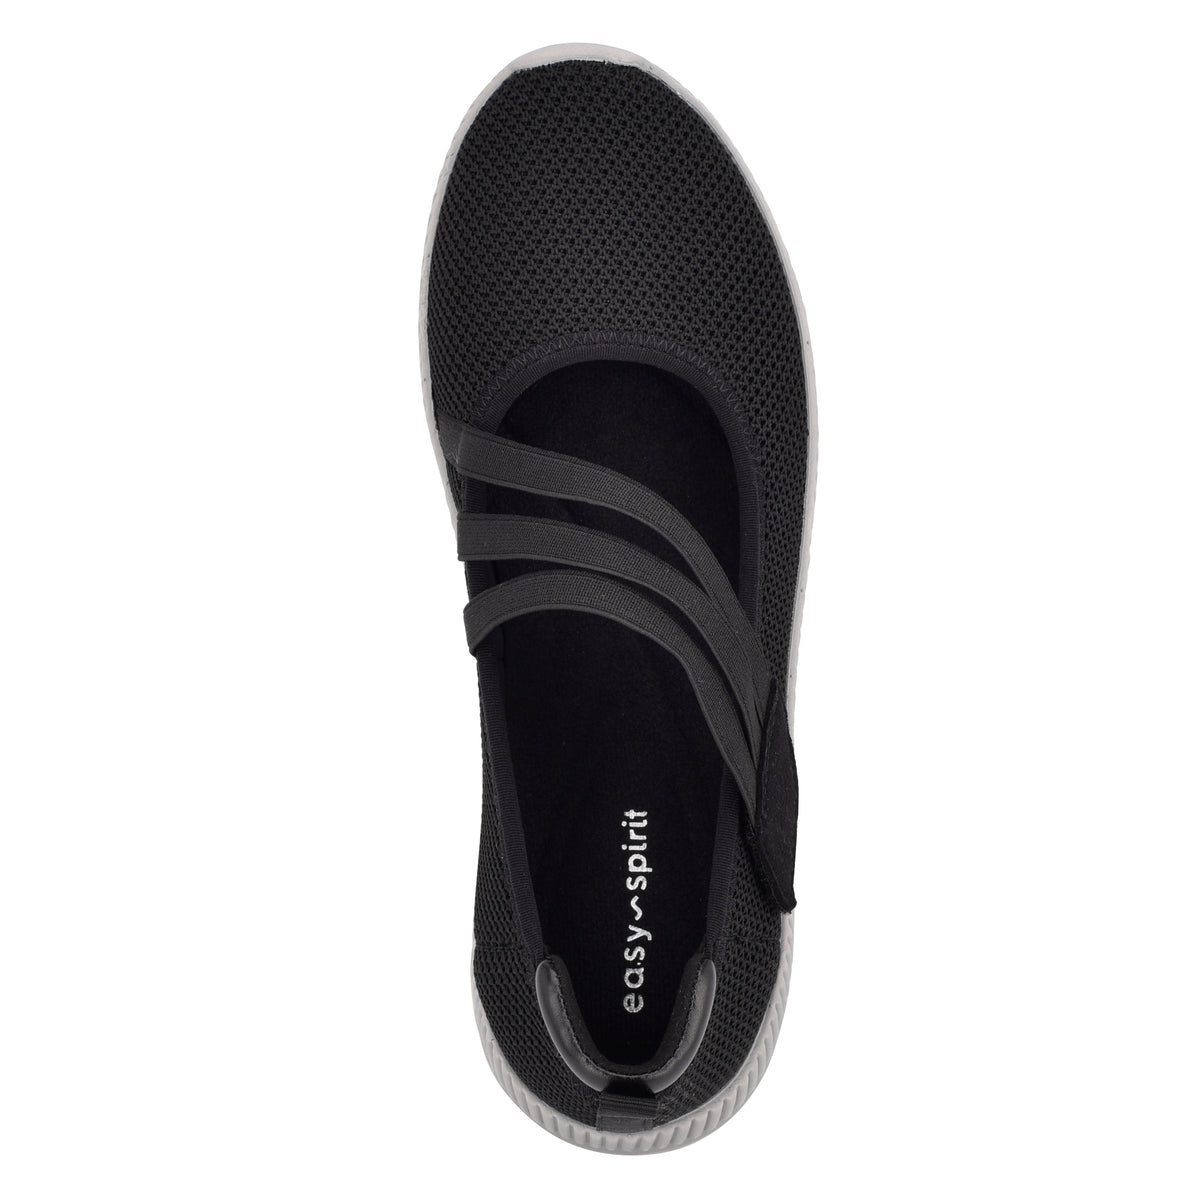 guin-mary-jane-walking-shoes-in-black-fabric